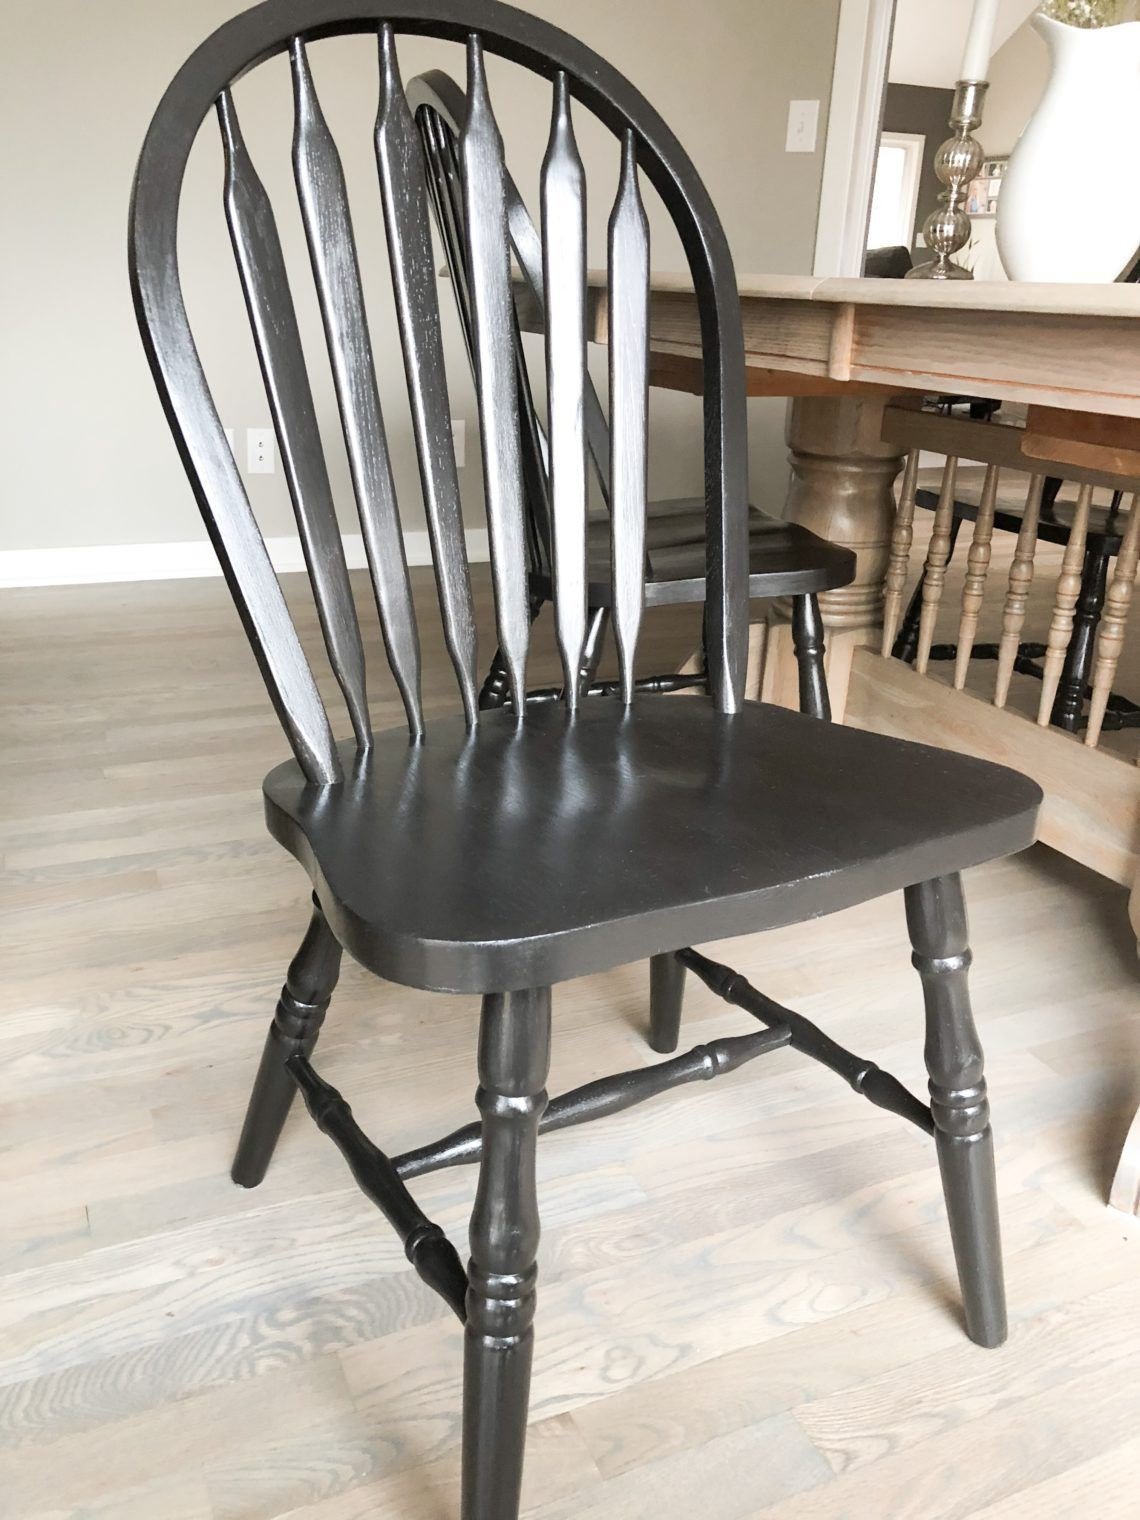 How to Stain, Paint and Reupholster a Chair Painted wood